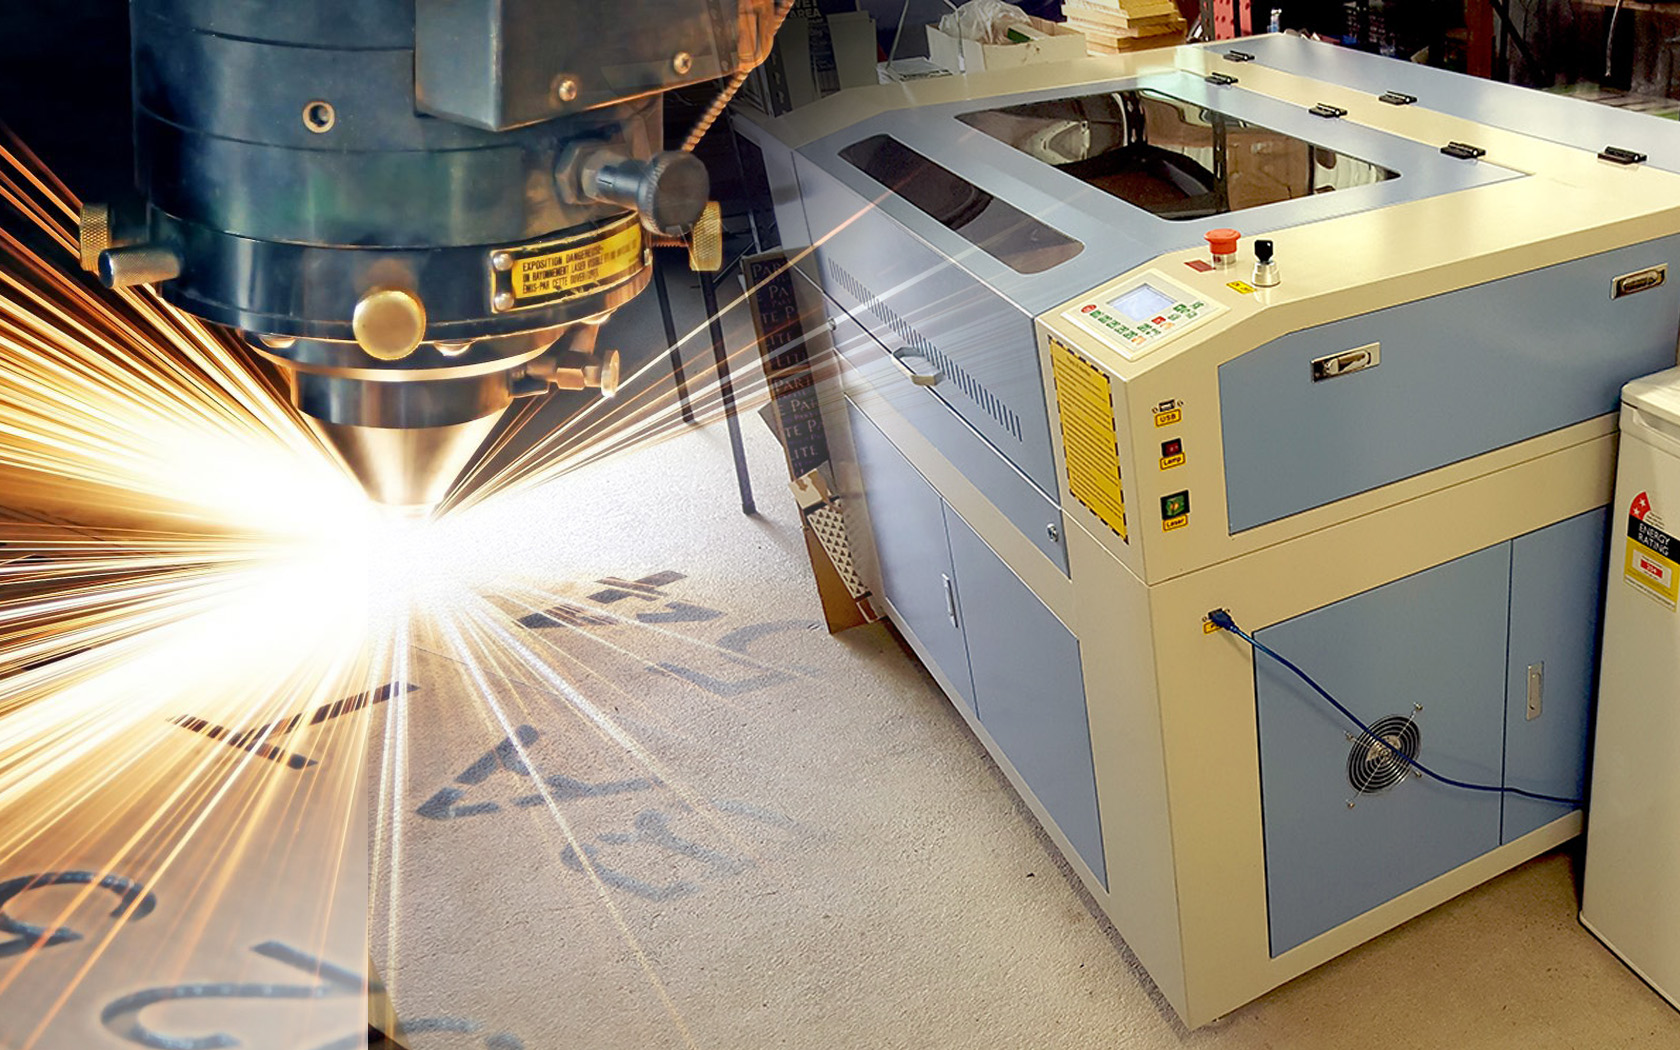 Chinese Laser Engraver User Experience Beyond Trophies